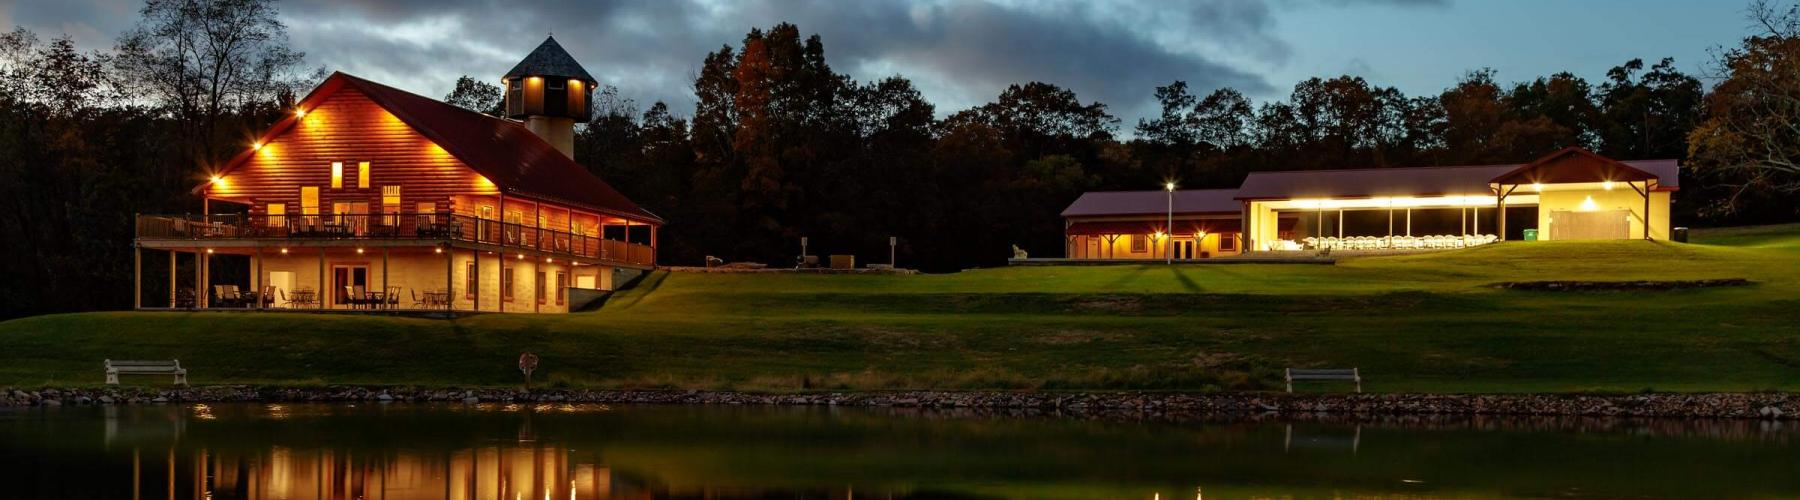 Fox Run Wedding and Retreat center at night